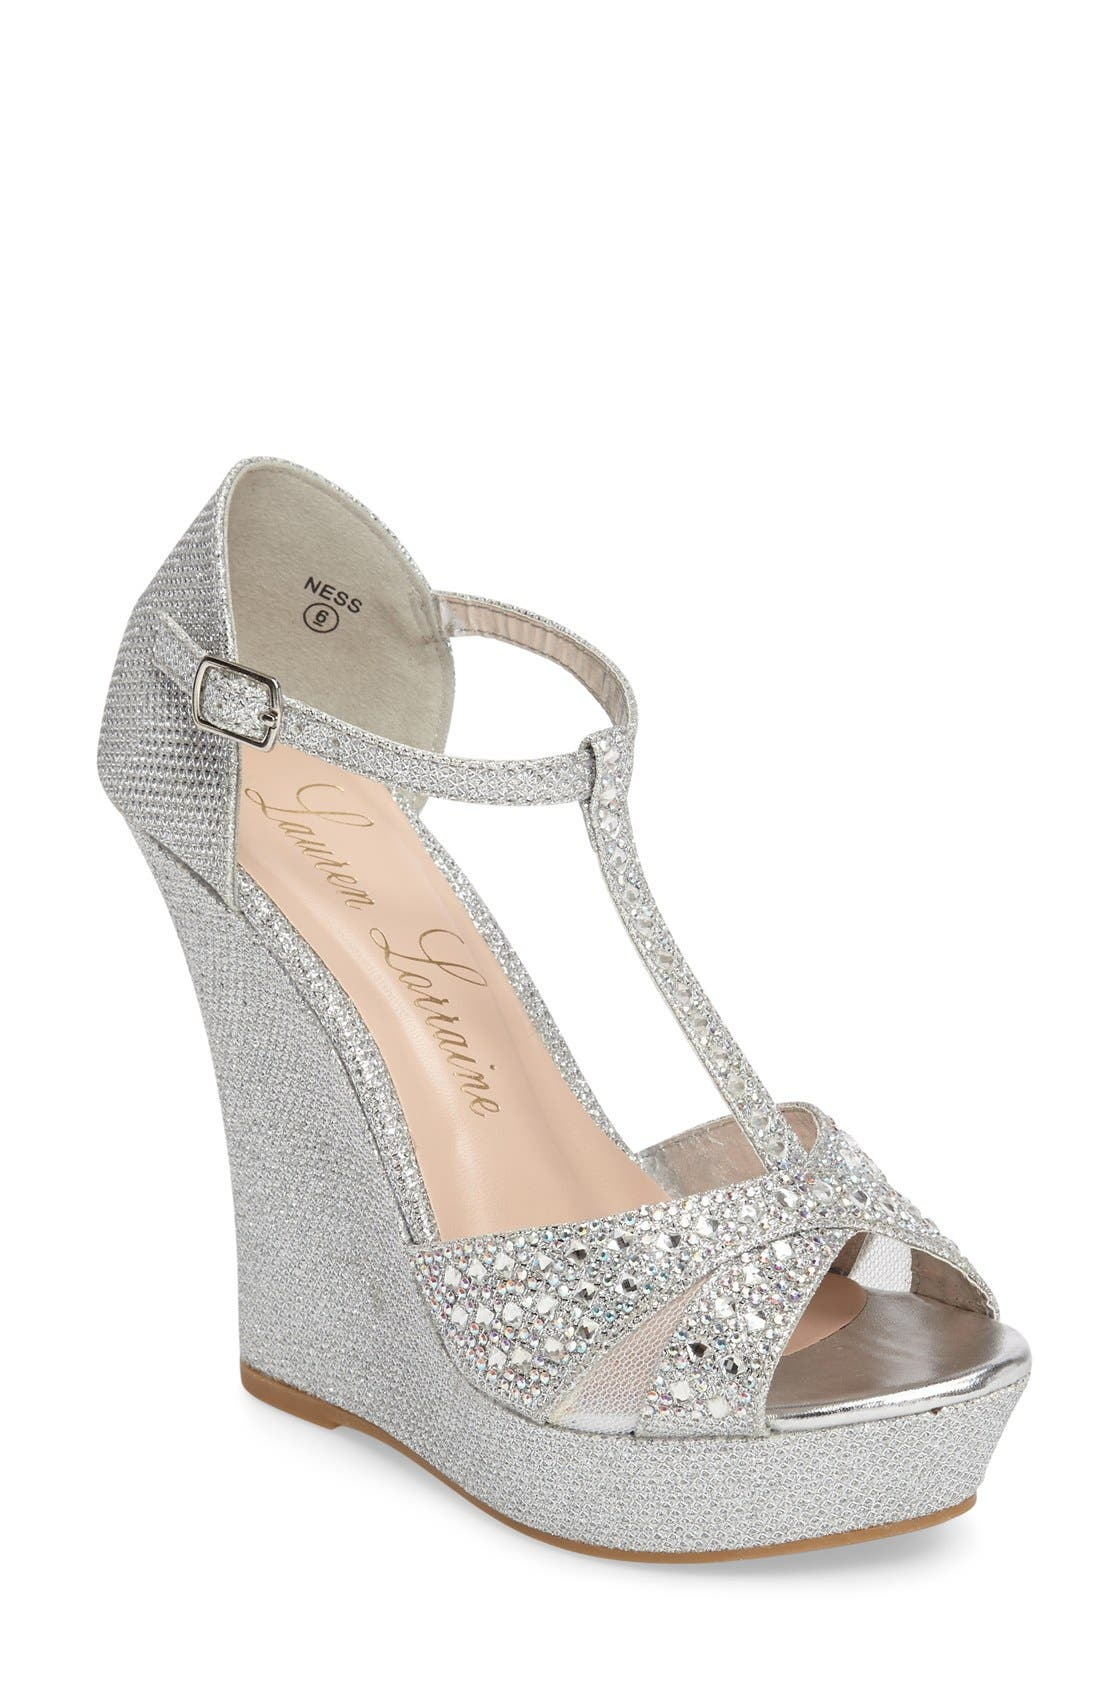 Lauren Lorraine Ness Crystal Embellished Wedge Sandal (Women)